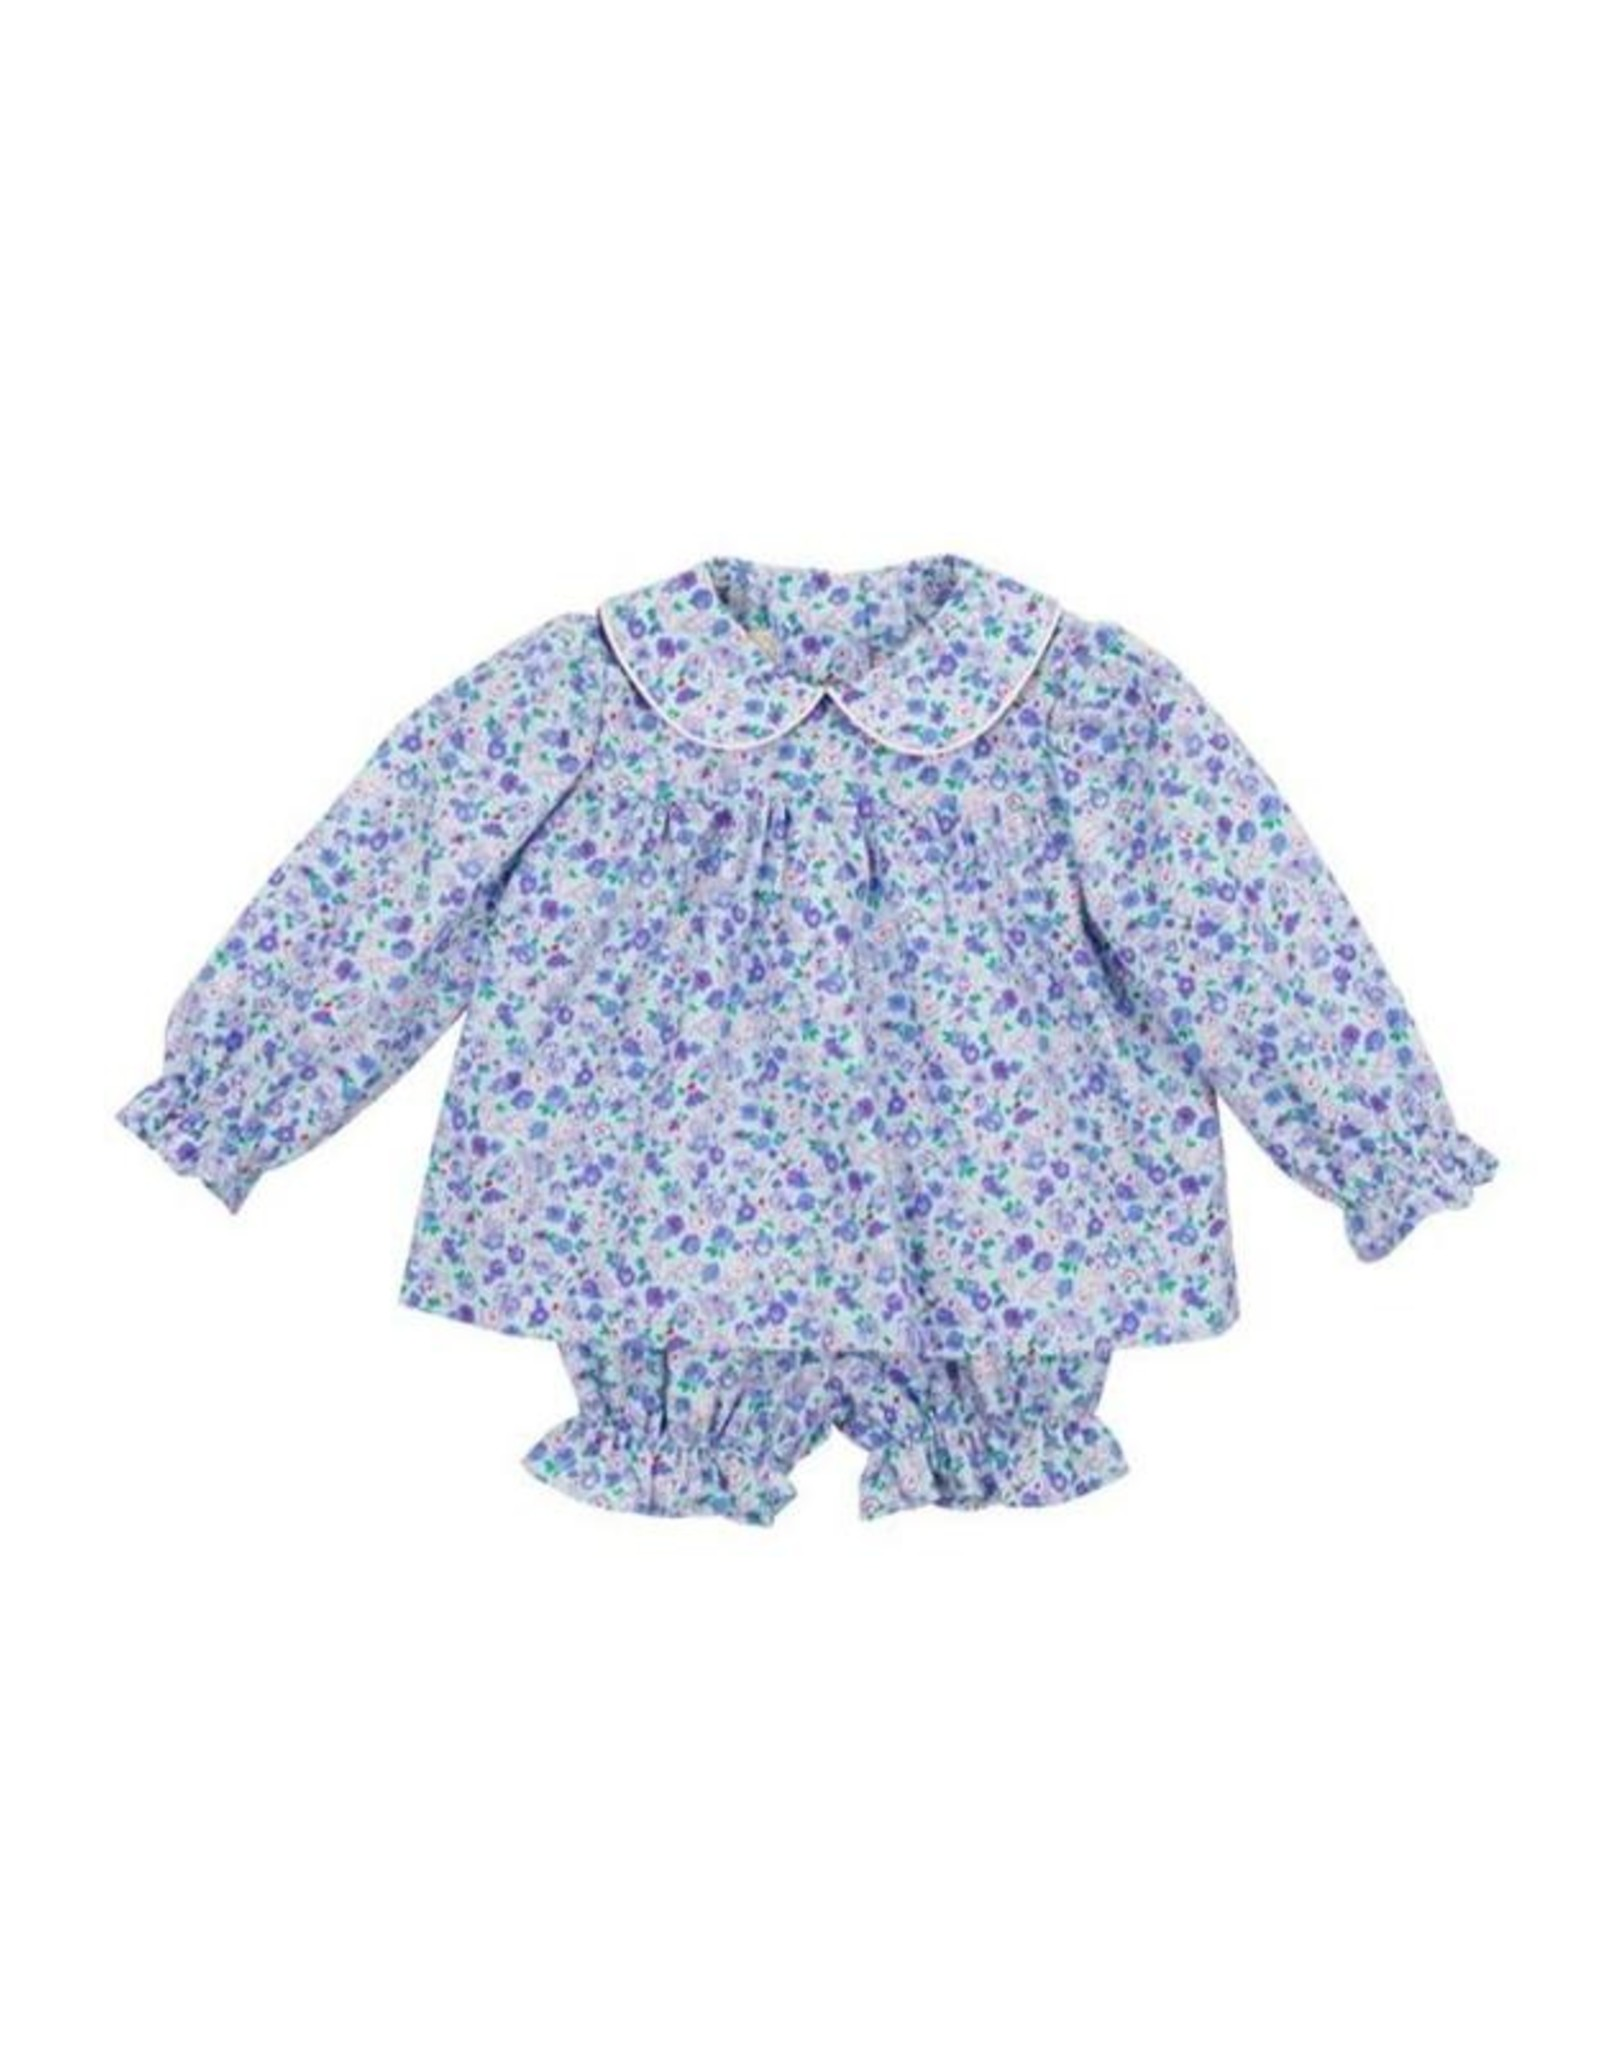 The Beaufort Bonnet Company Bon Air Bloomer Set in Mableton Floral